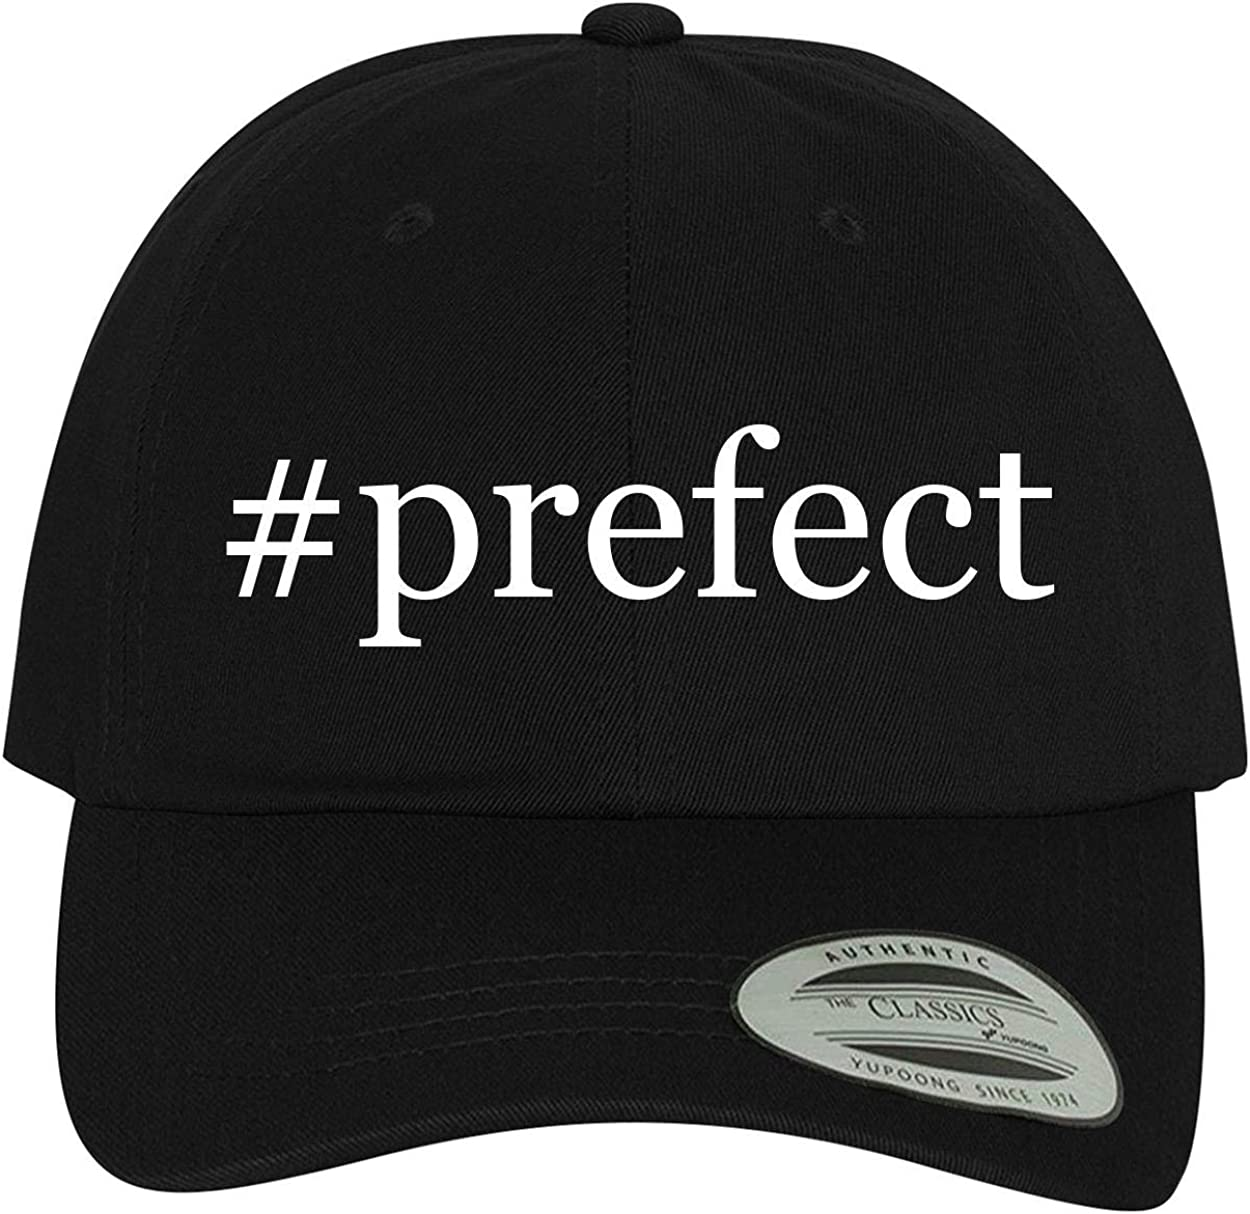 Comfortable Dad Hat Baseball Cap BH Cool Designs #Prefect